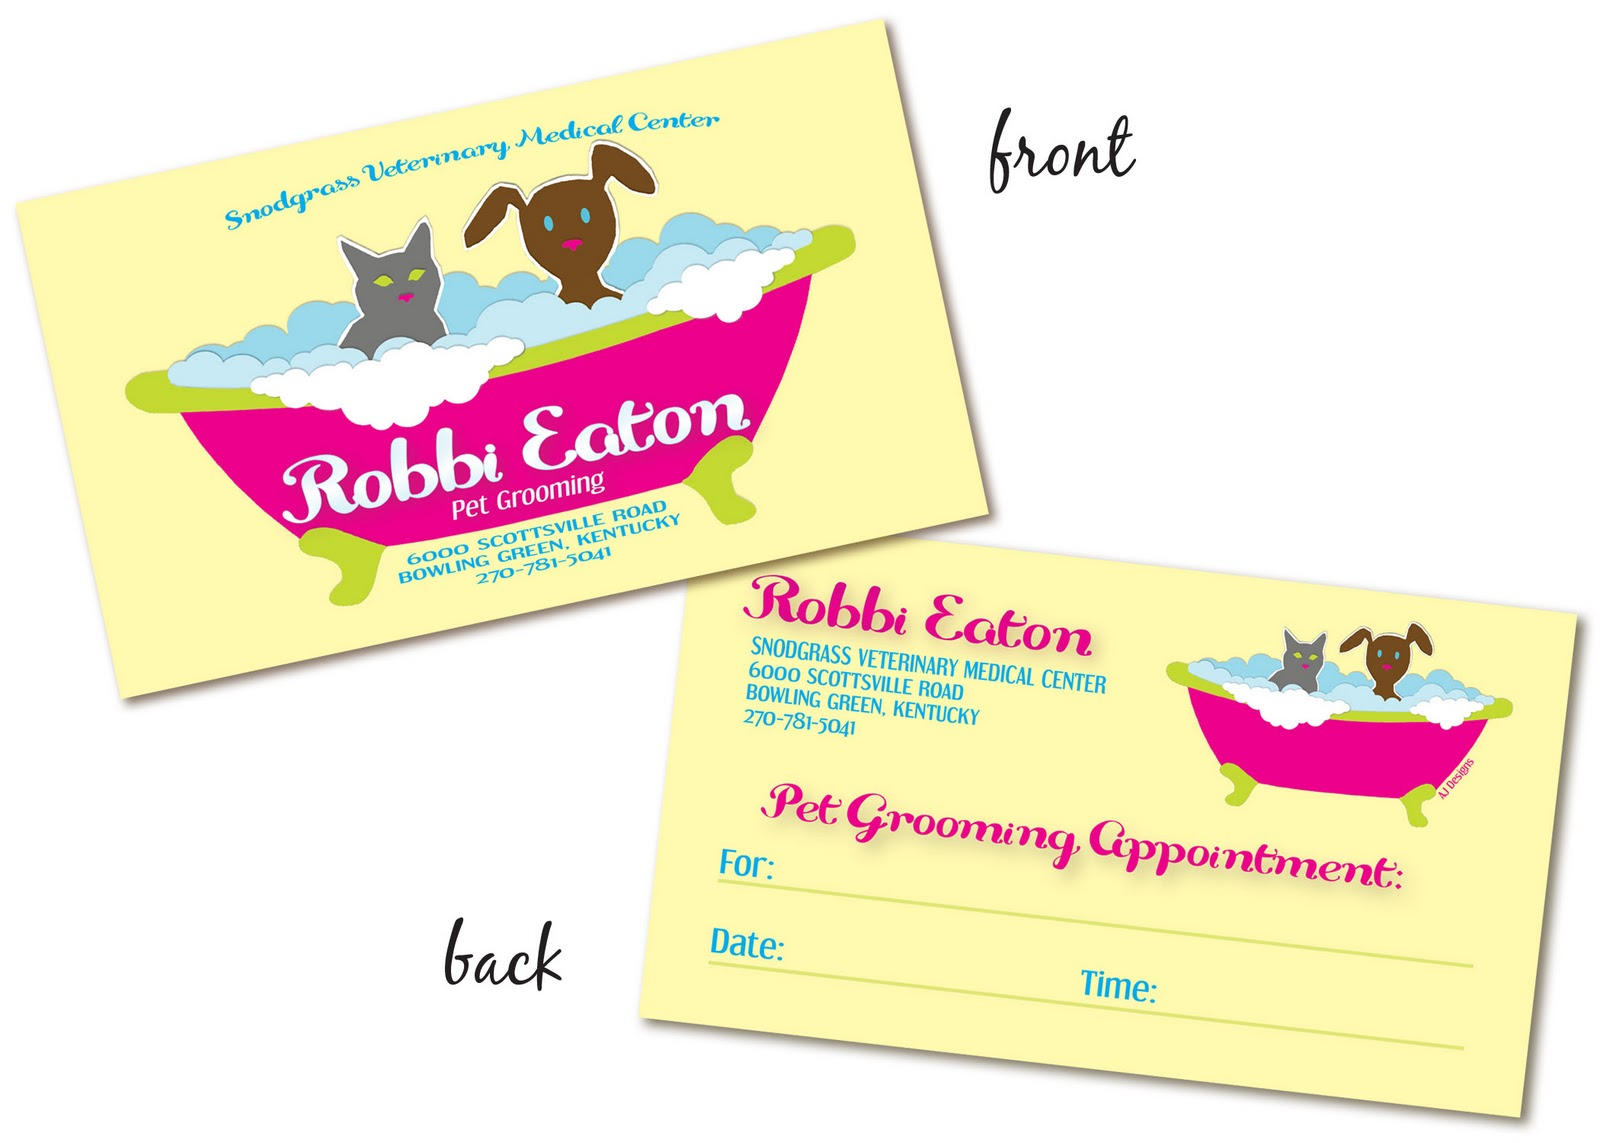 Robbi S Pet Grooming Business Cards Anyone Need Dog Or Cat See My Robinson Eaton At Snodgrass In Bowling Green Ky